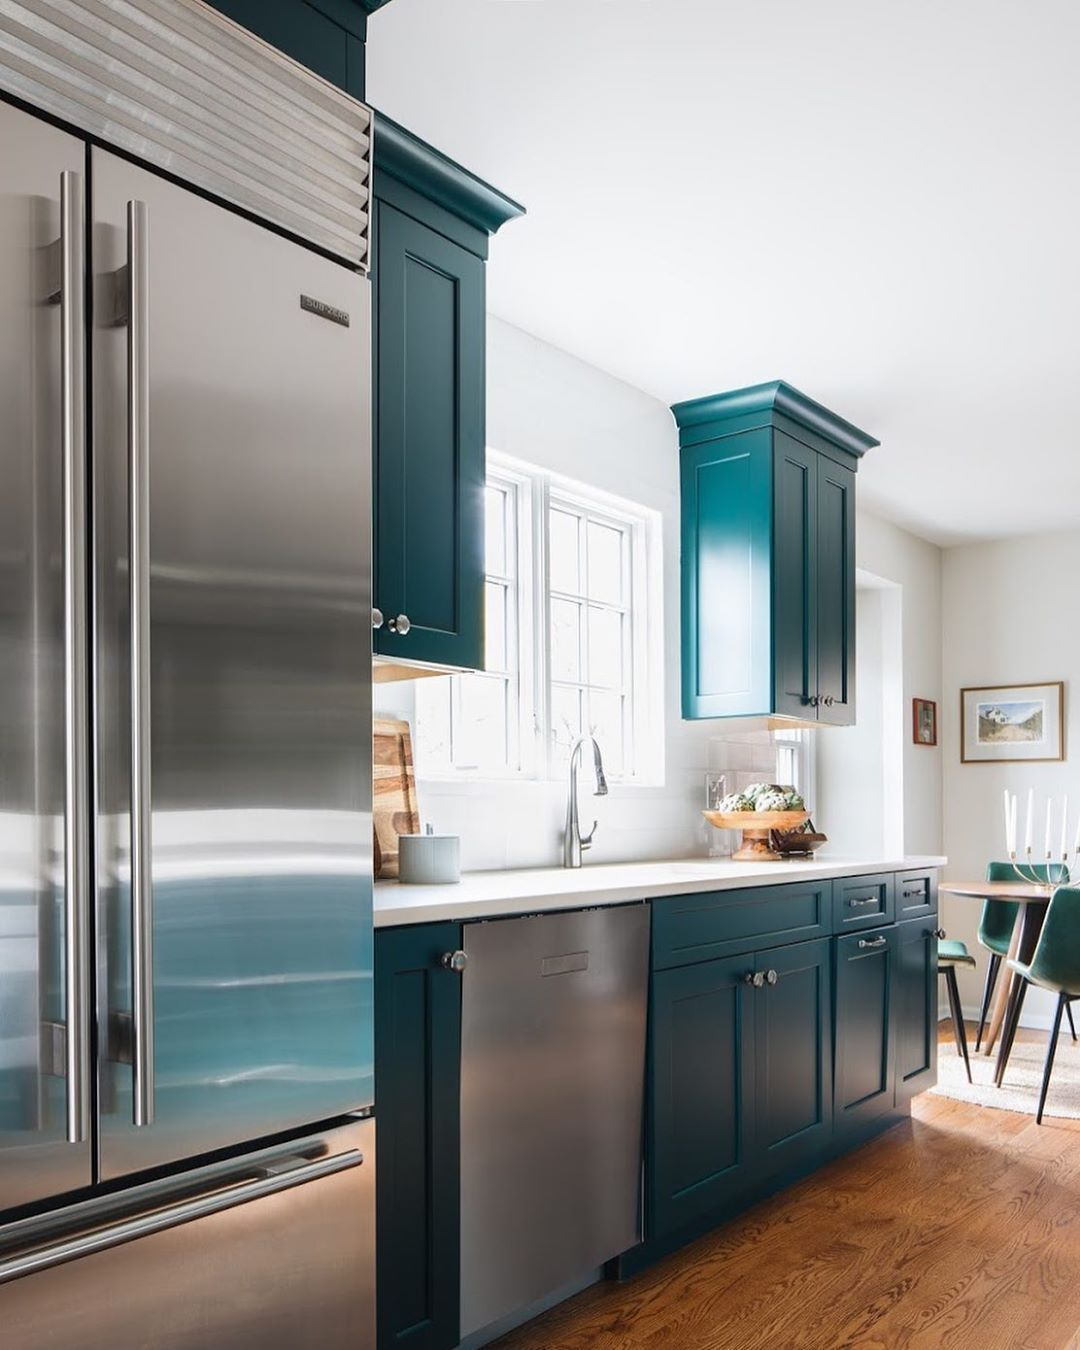 18 Green Kitchen Cabinet Ideas We Can T Get Enough Of In 2020 Green Kitchen Cabinets Green Kitchen Green Cabinets